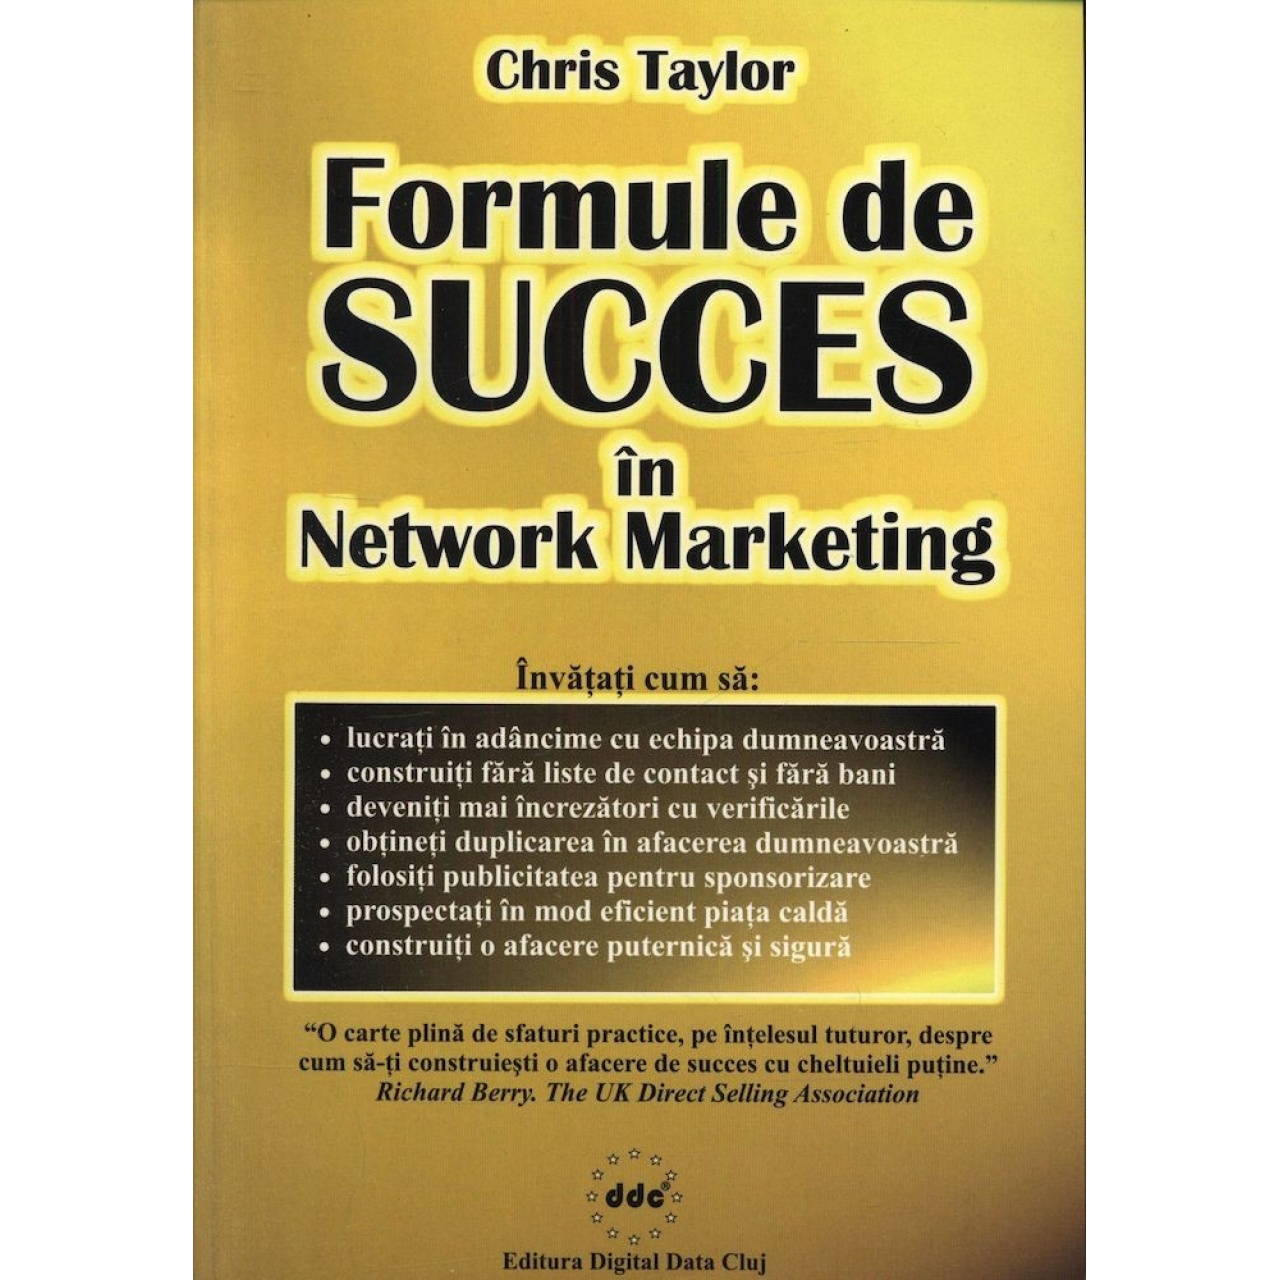 Formule de succes în Network Marketing